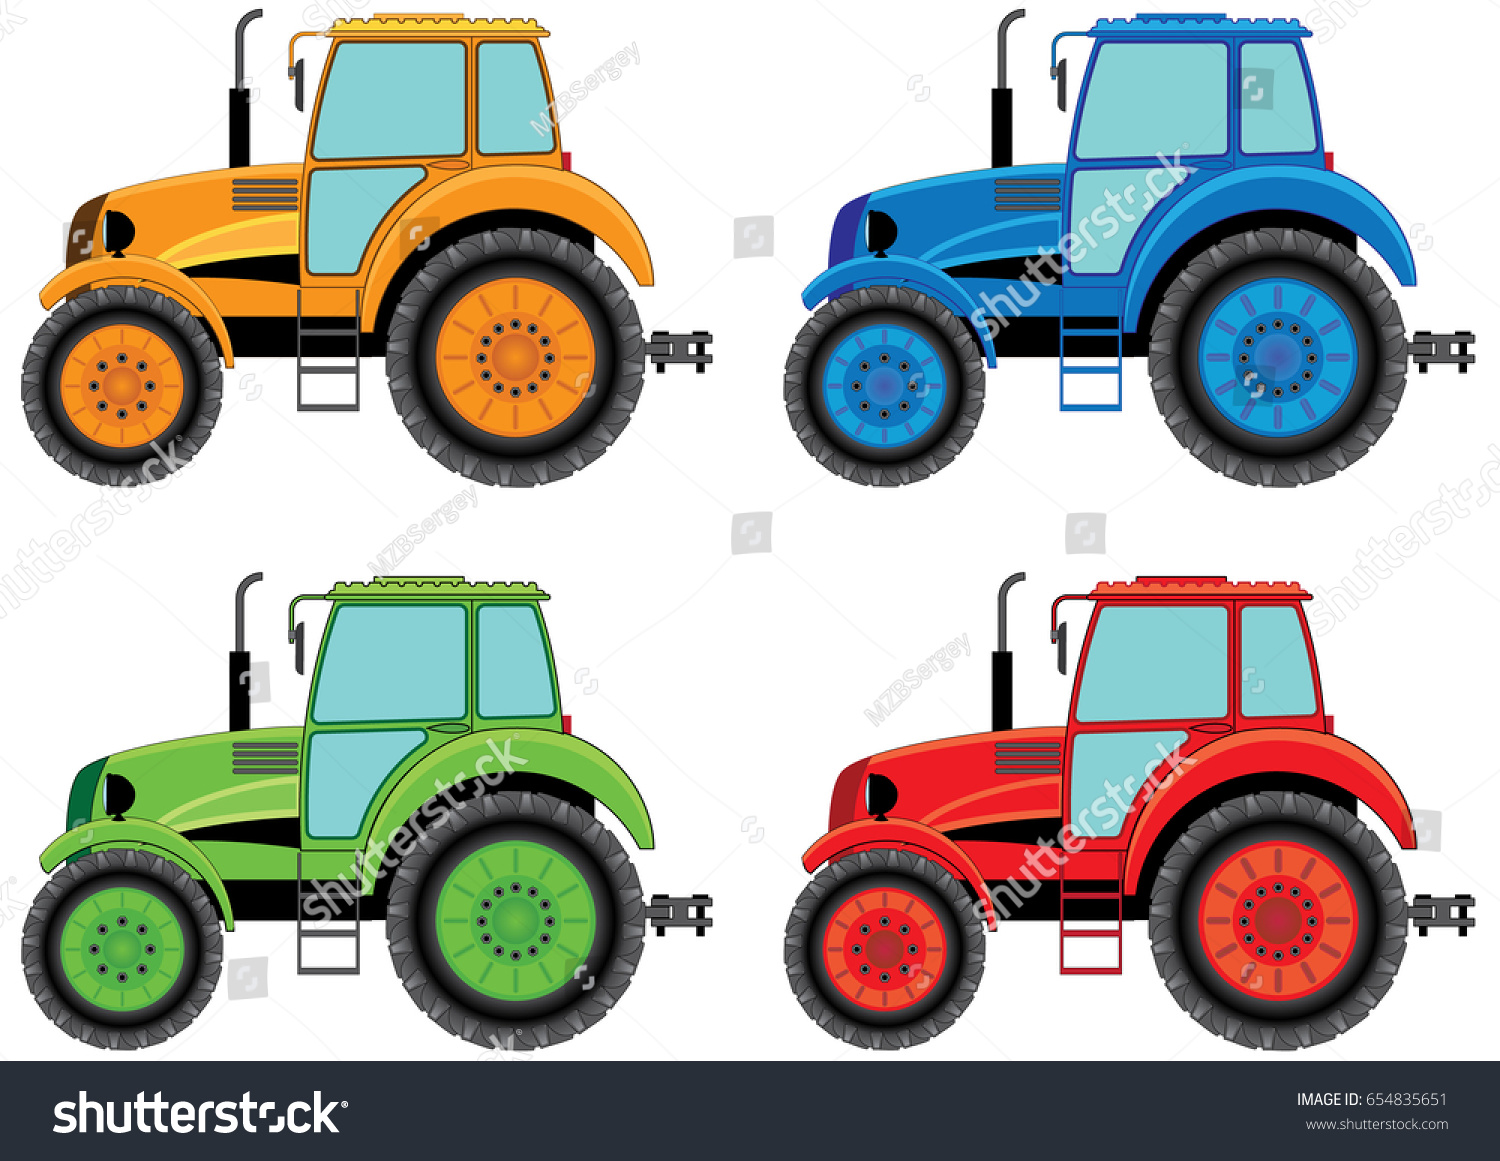 Set Color Wheel Agricultural Tractors Print Royalty Free Stock Image